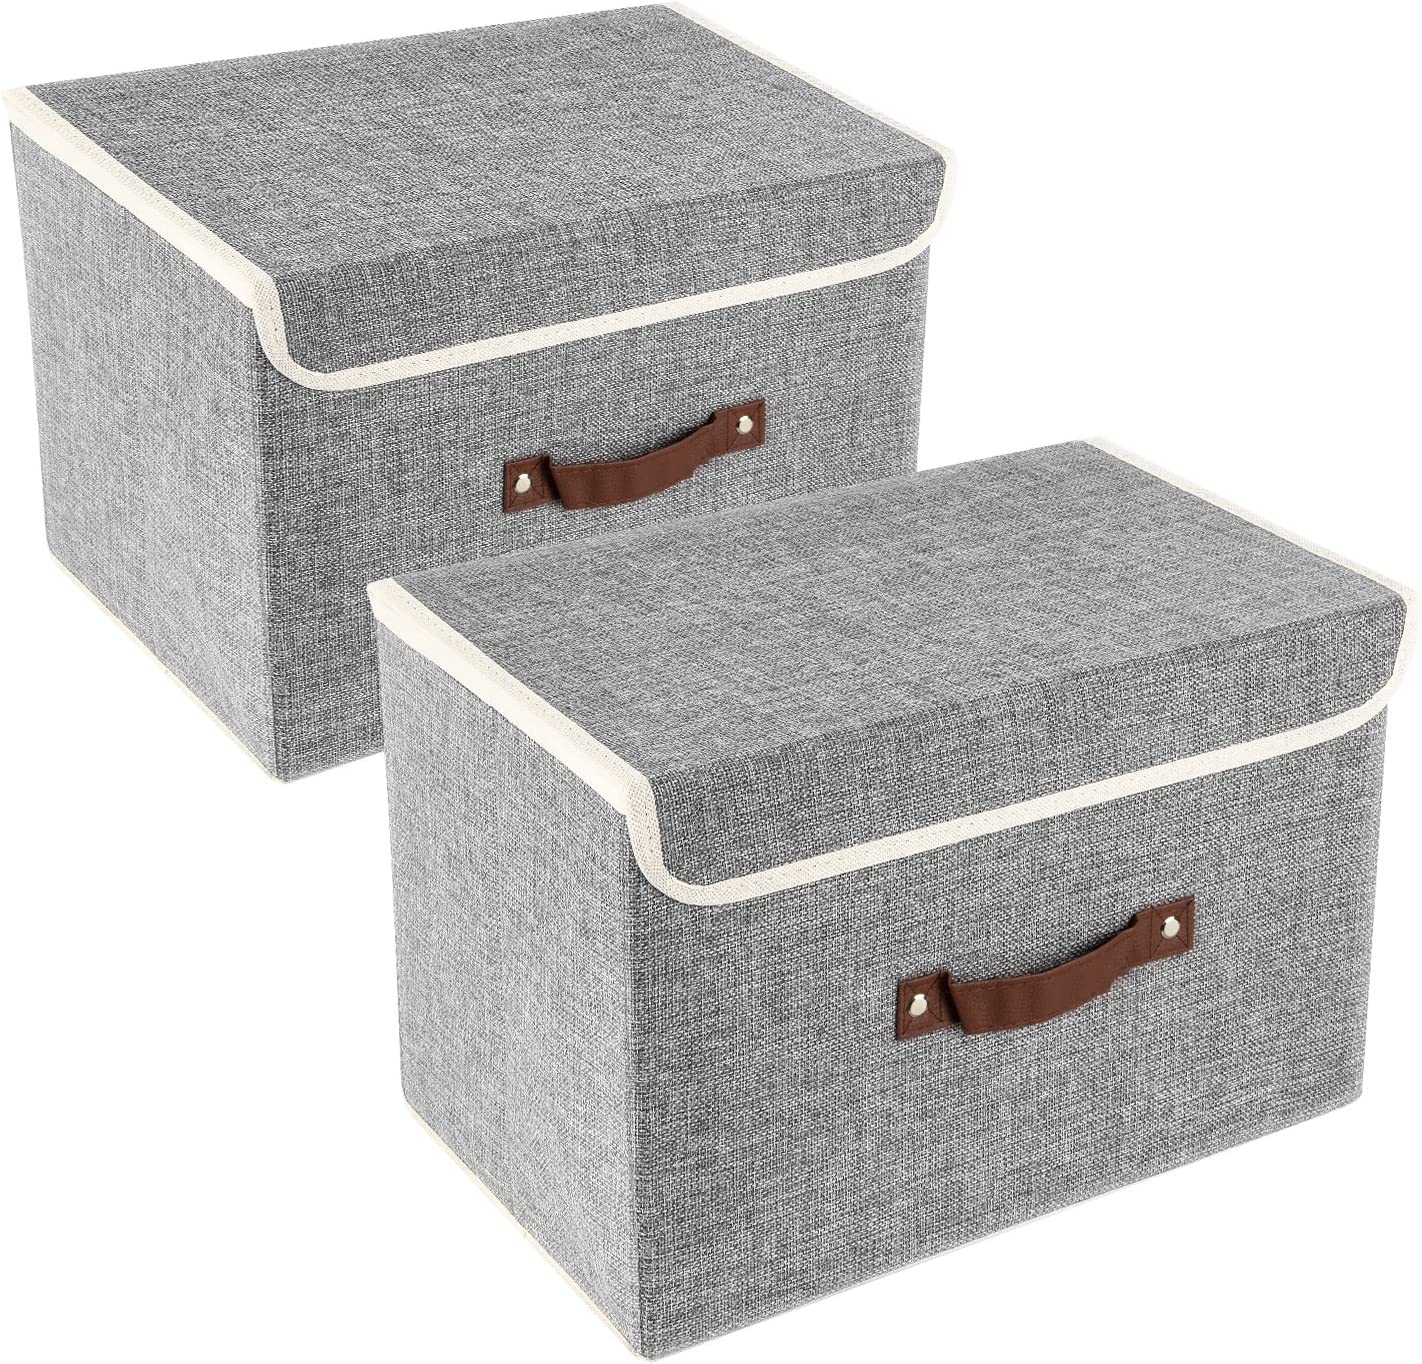 Meyliving Foldable Storage Box X-Large for Toys Car Trunks Sports 2-pack